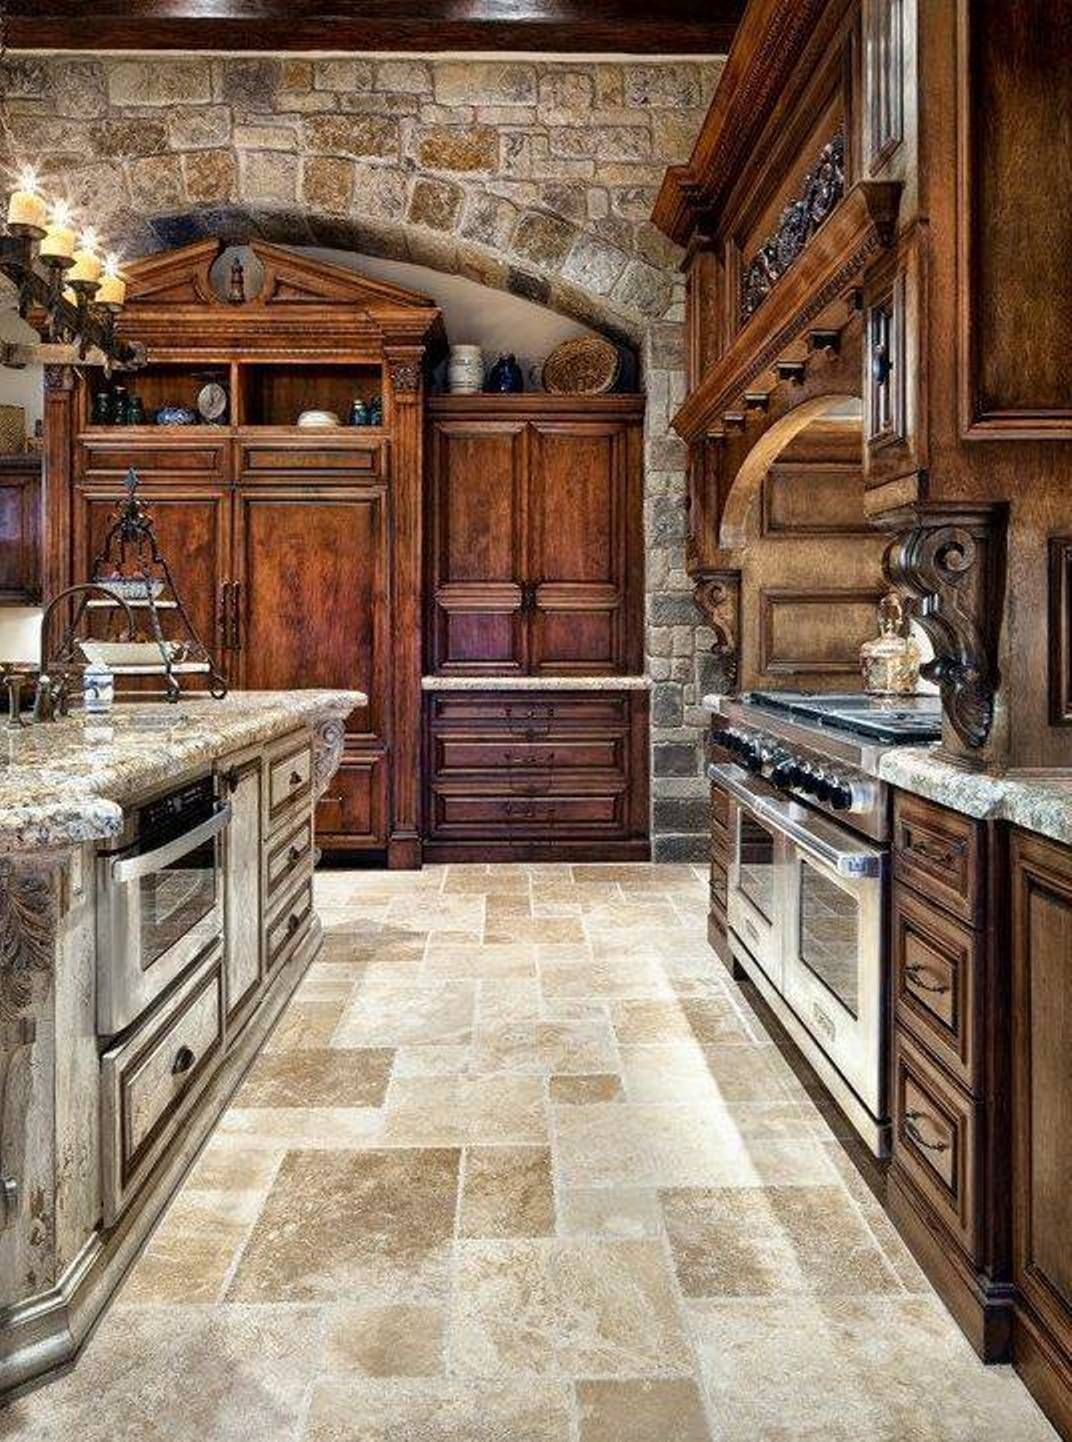 Kitchen Brick Wall Old World Tuscan Themed Kitchen Style With Arched Brick